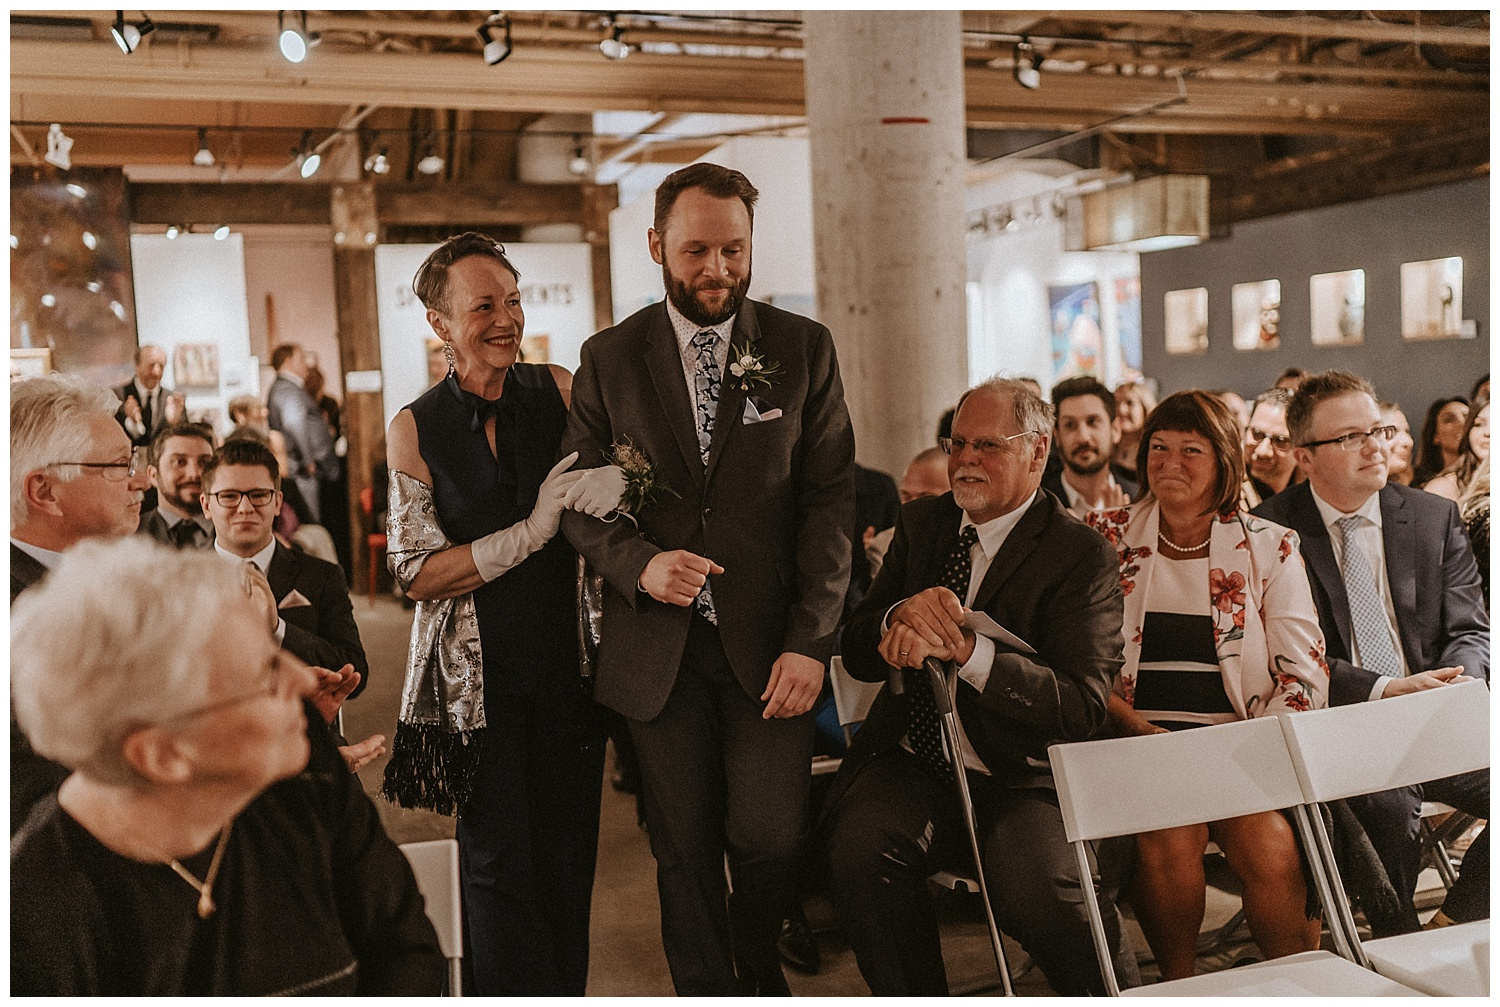 Katie Marie Photography | Archeo Wedding Arta Gallery Wedding | Distillery District Wedding | Toronto Wedding Photographer | Hamilton Toronto Ontario Wedding Photographer |_0097.jpg